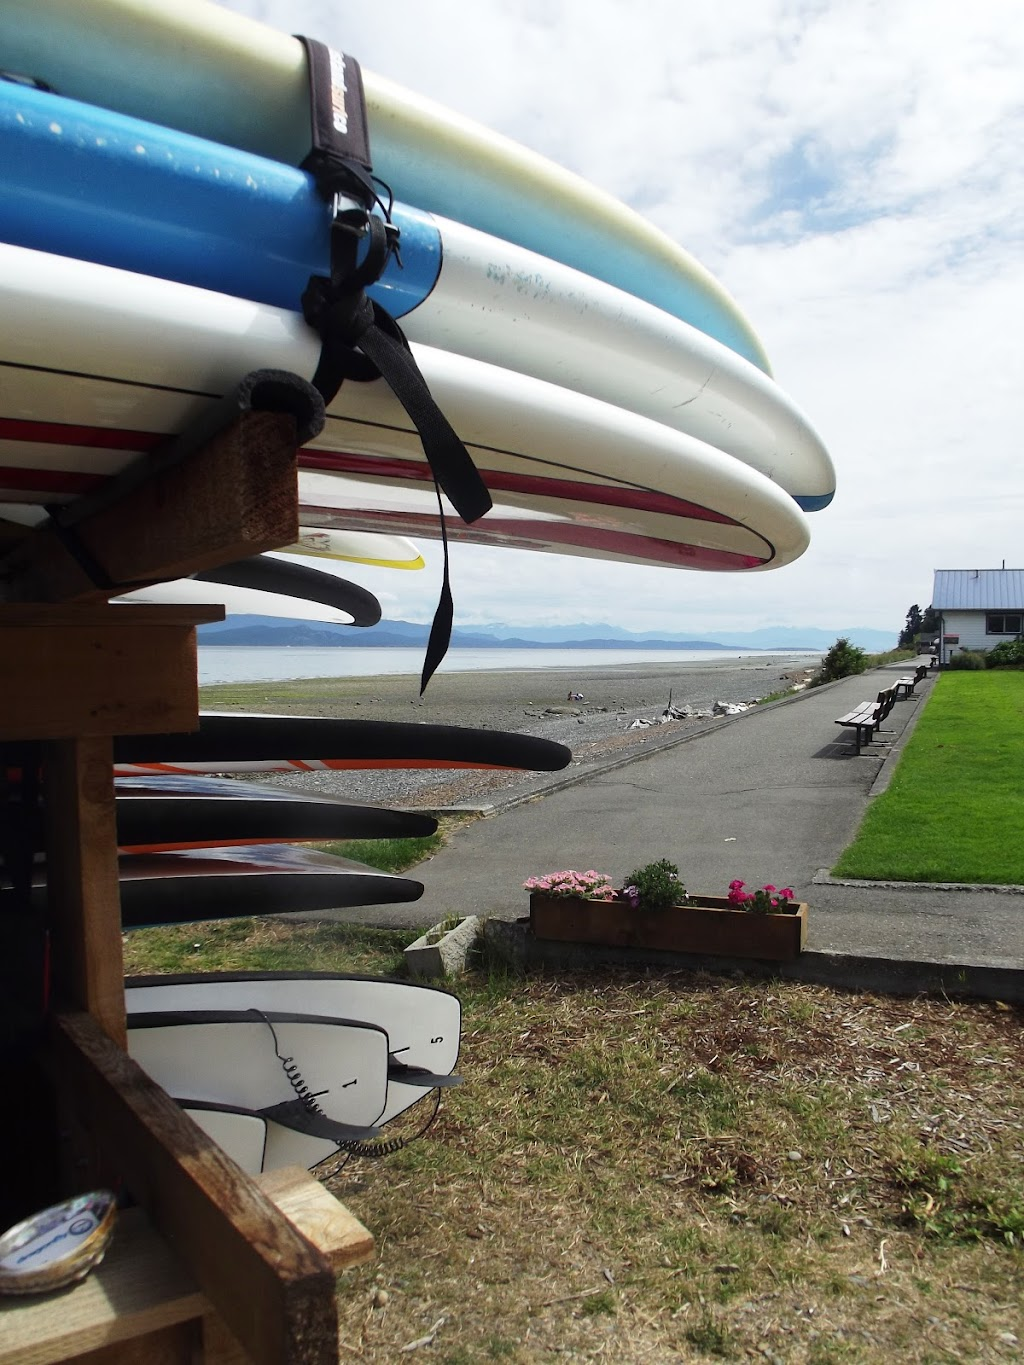 Dragonfly Stand Up Paddle Board Rentals | point of interest | 2831 Island Hwy W, Qualicum Beach, BC V9K 2C4, Canada | 6046179194 OR +1 604-617-9194